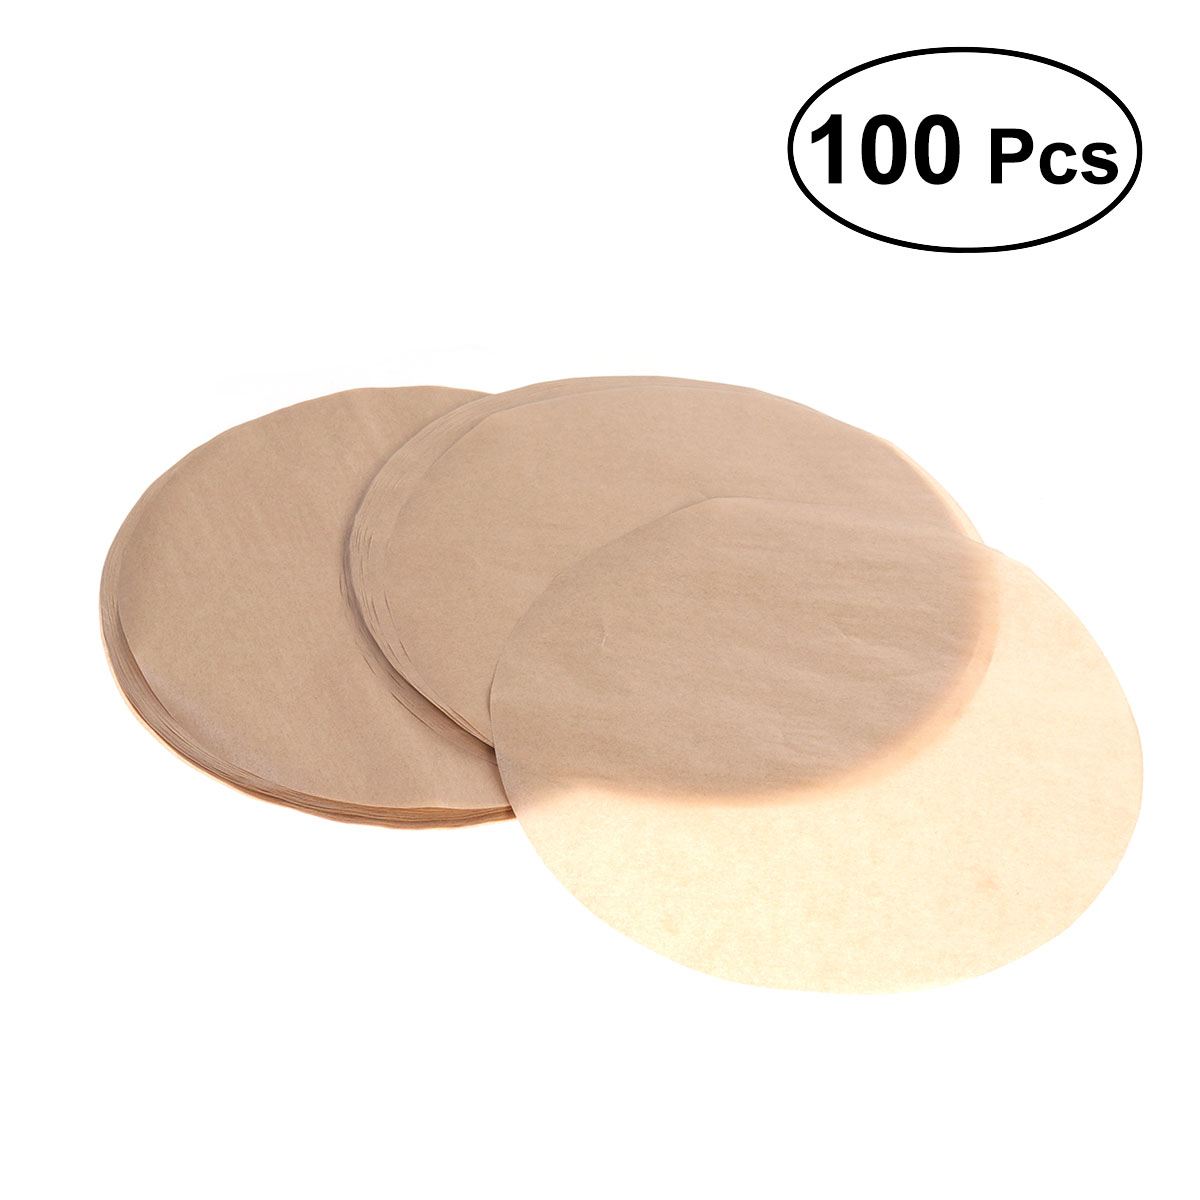 Round Baking Sheet Cookie Cake Liner BBQ Pan Oven Mat Greaseproof Paper Nonstick